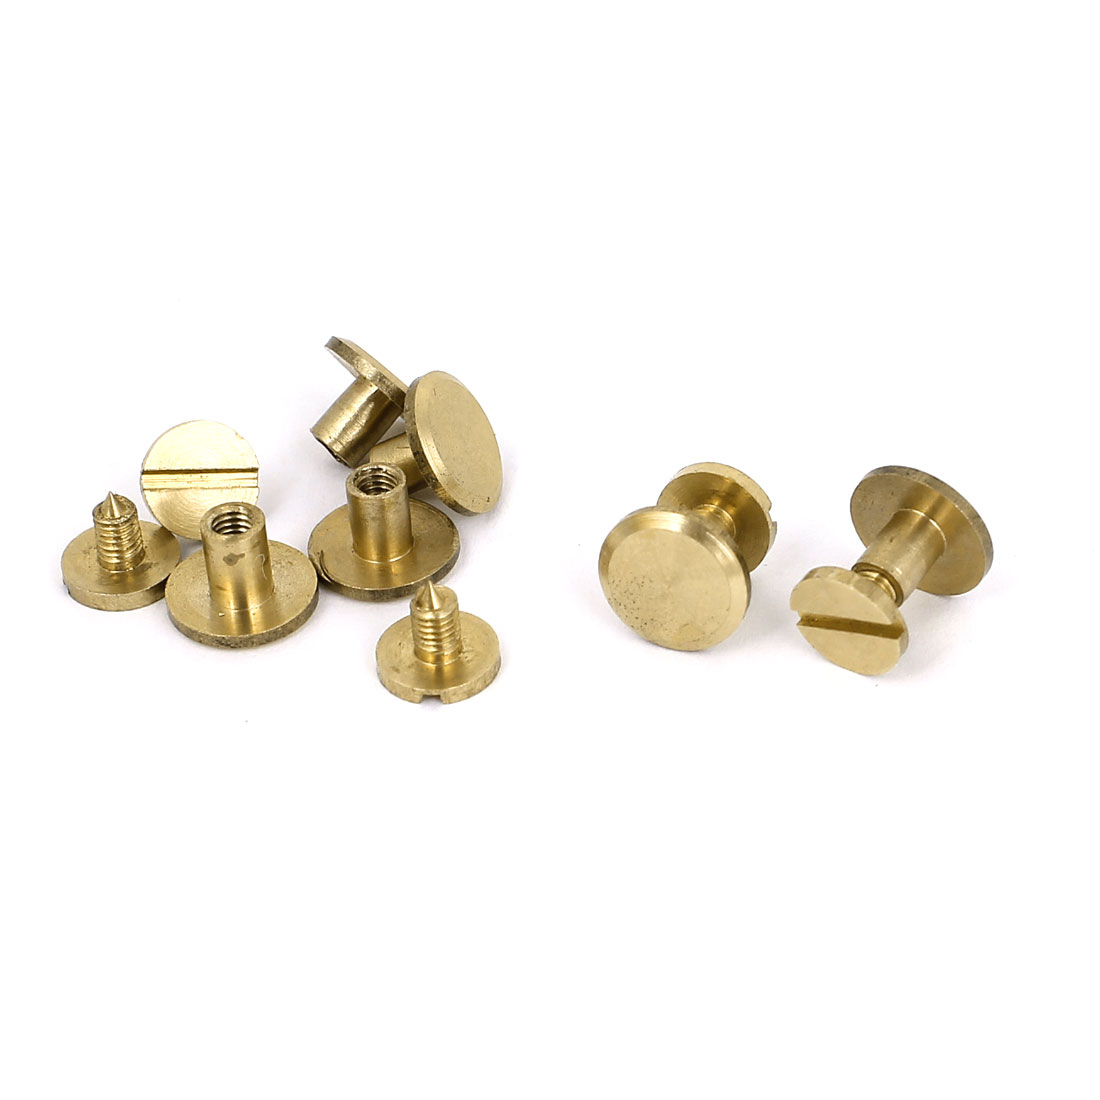 4x7mm Brass Plated Binding Chicago Screw Post For Albums Scrapbook 5pcs